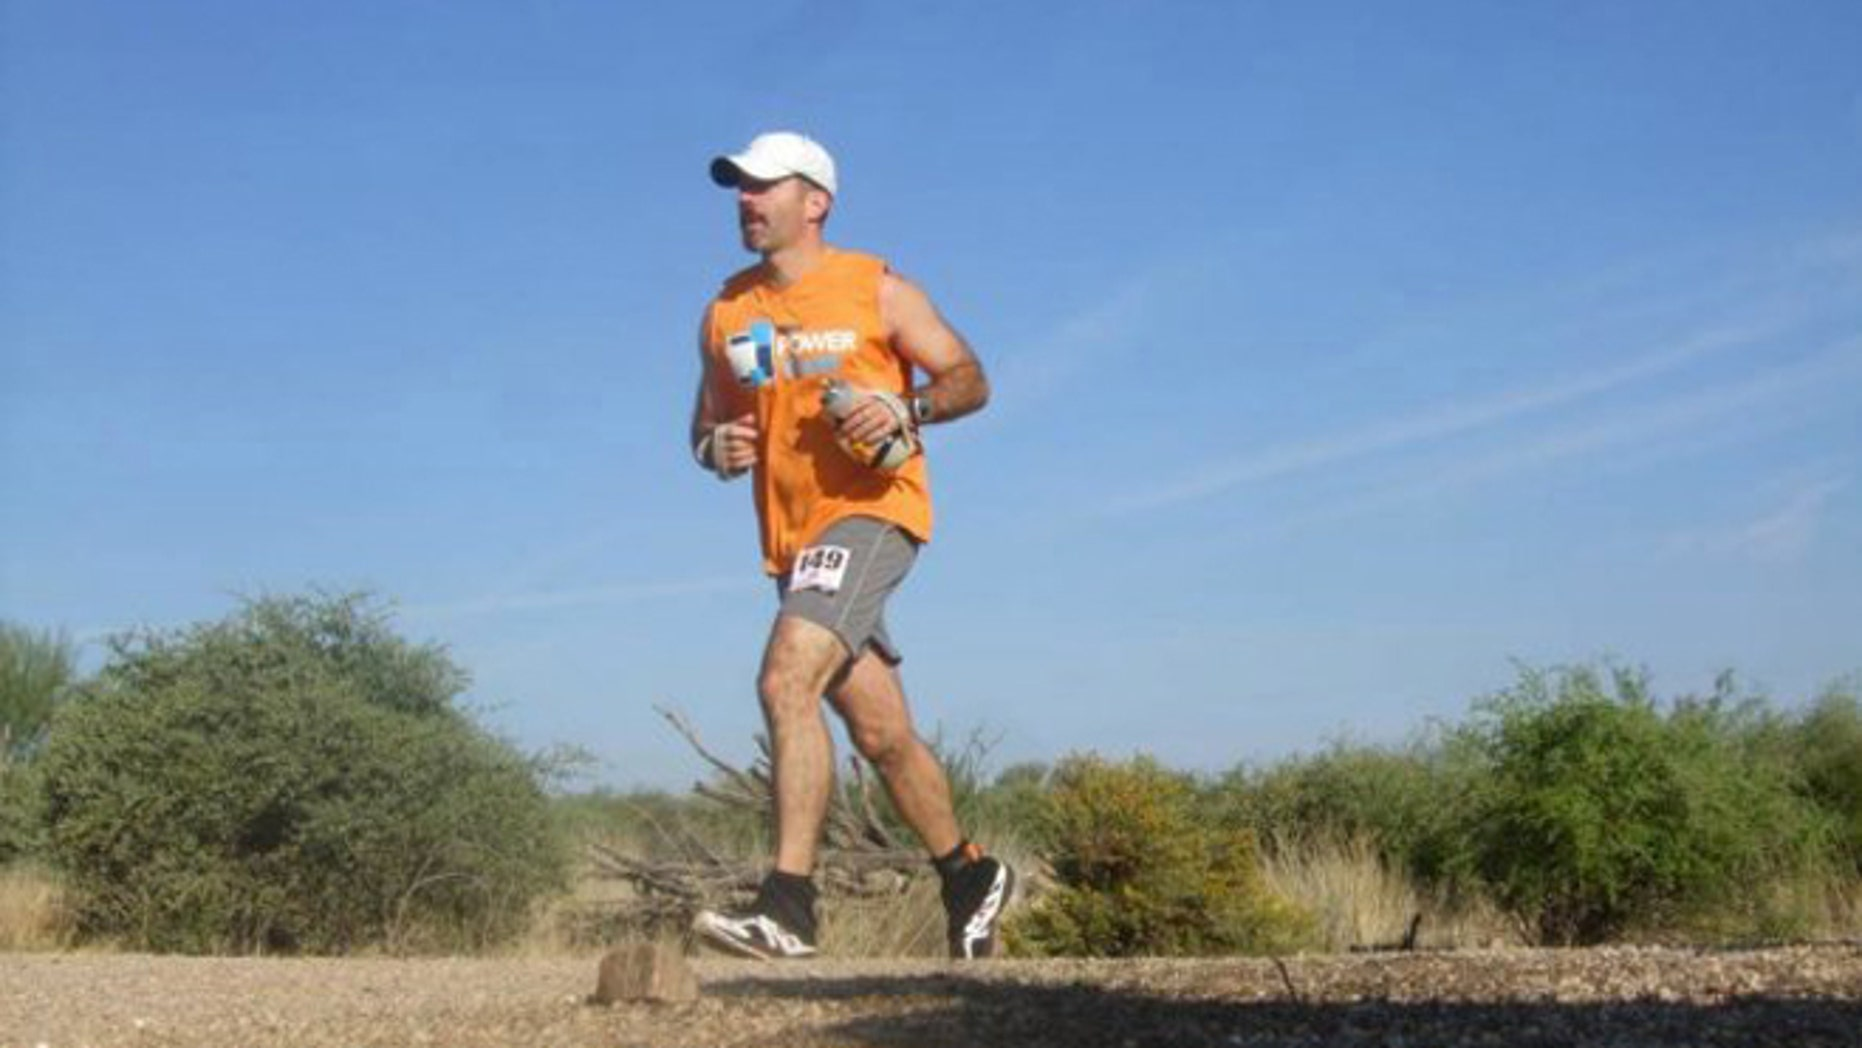 Eric Gelber, 46, wearing his signature MMRF Power Team t-shirt, trains for his first Super Ultra run; the 'Catskill 155: Journey for a Cure' in August 2011. COURTESY: Multiple Myeloma Research Foundation